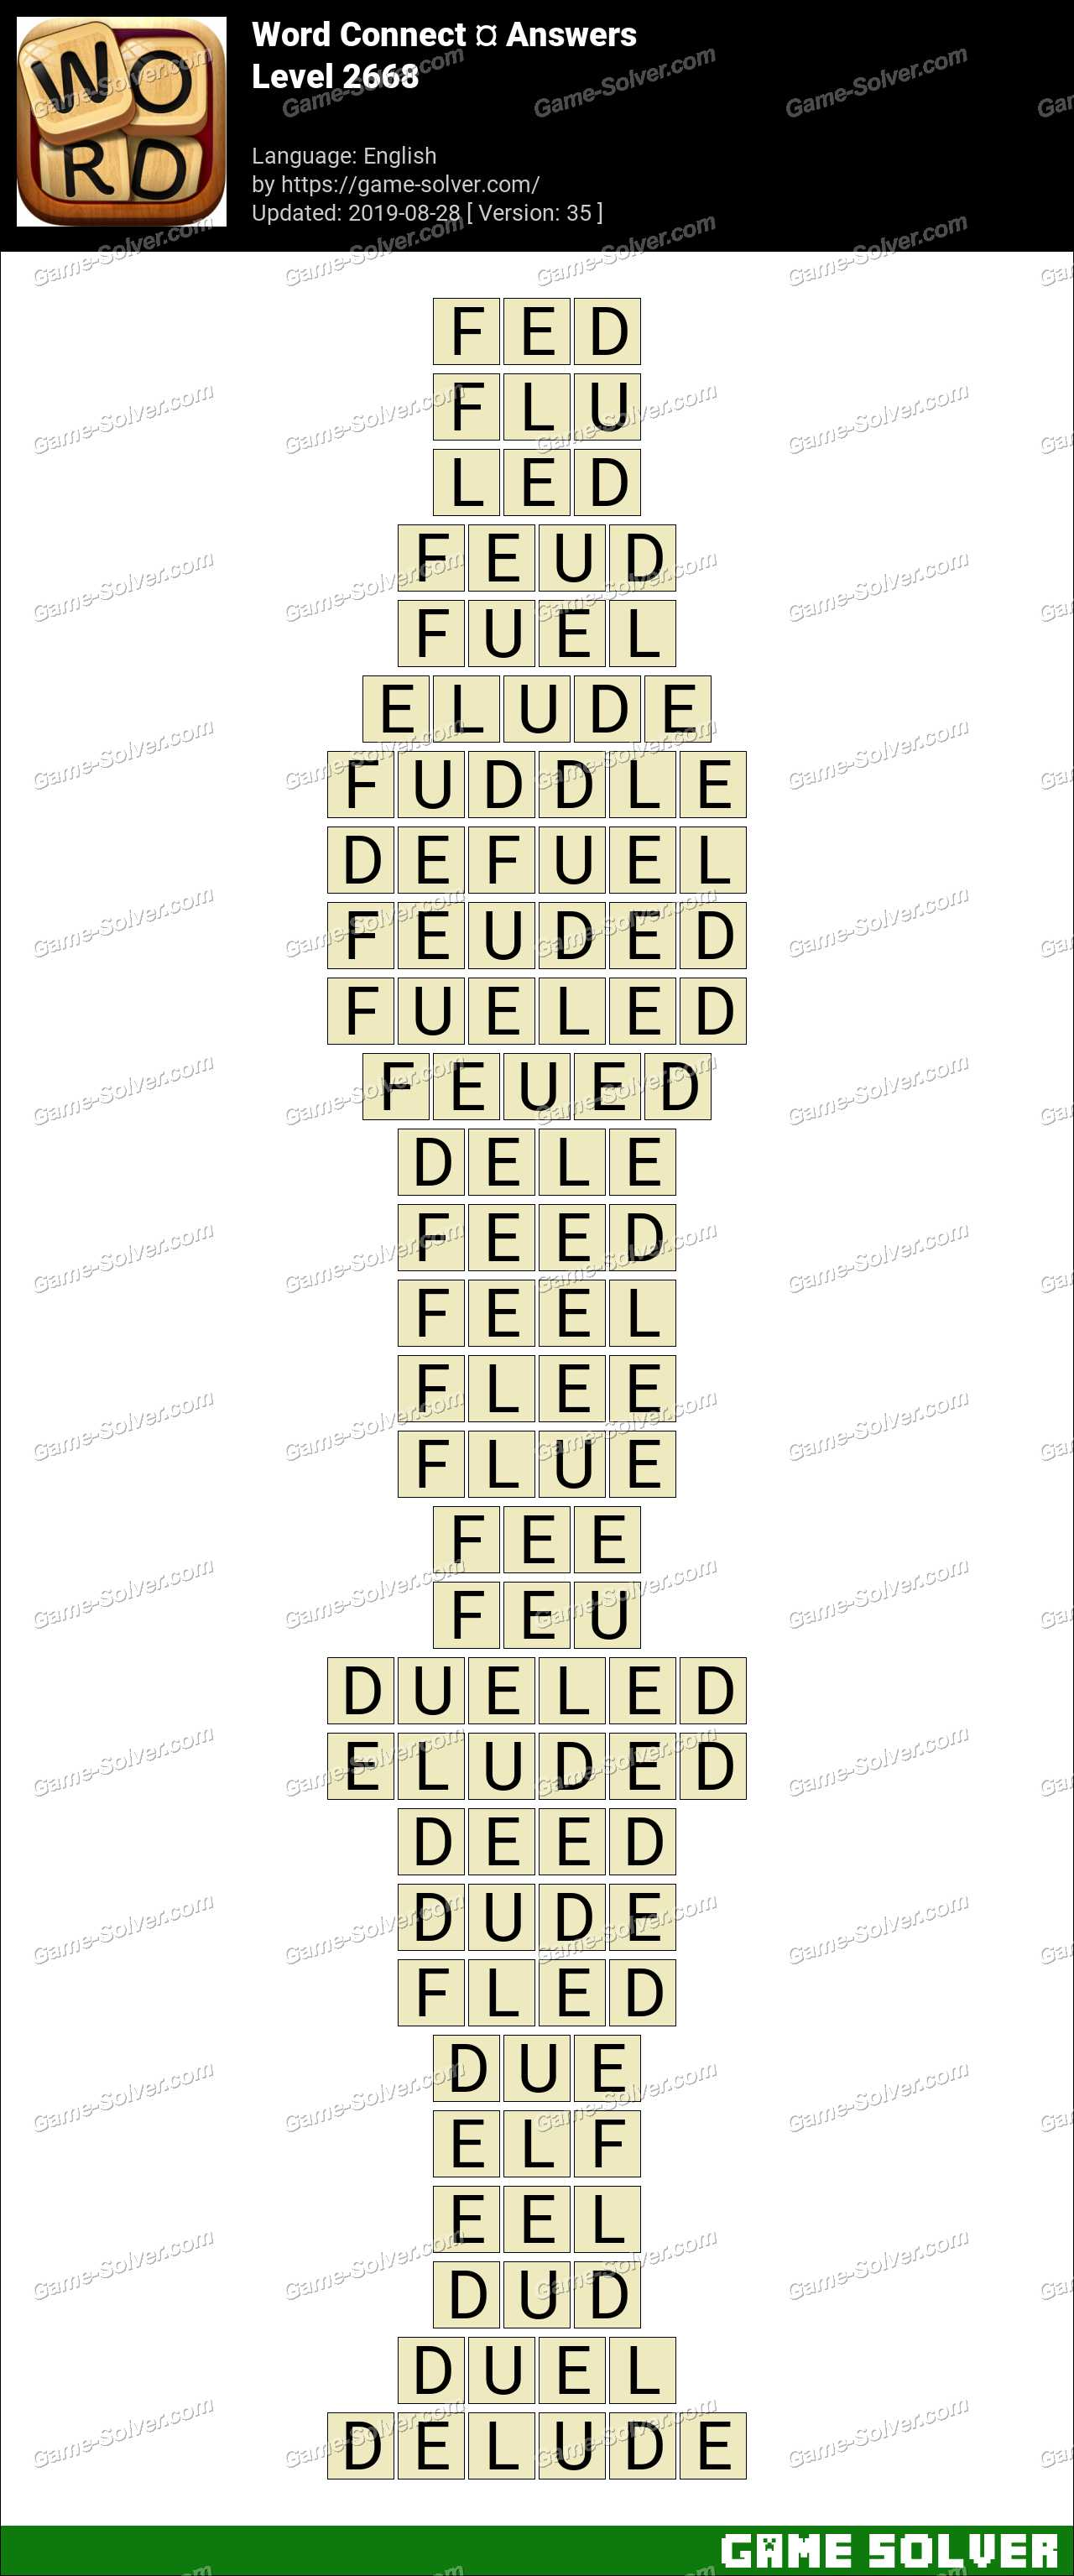 Word Connect Level 2668 Answers